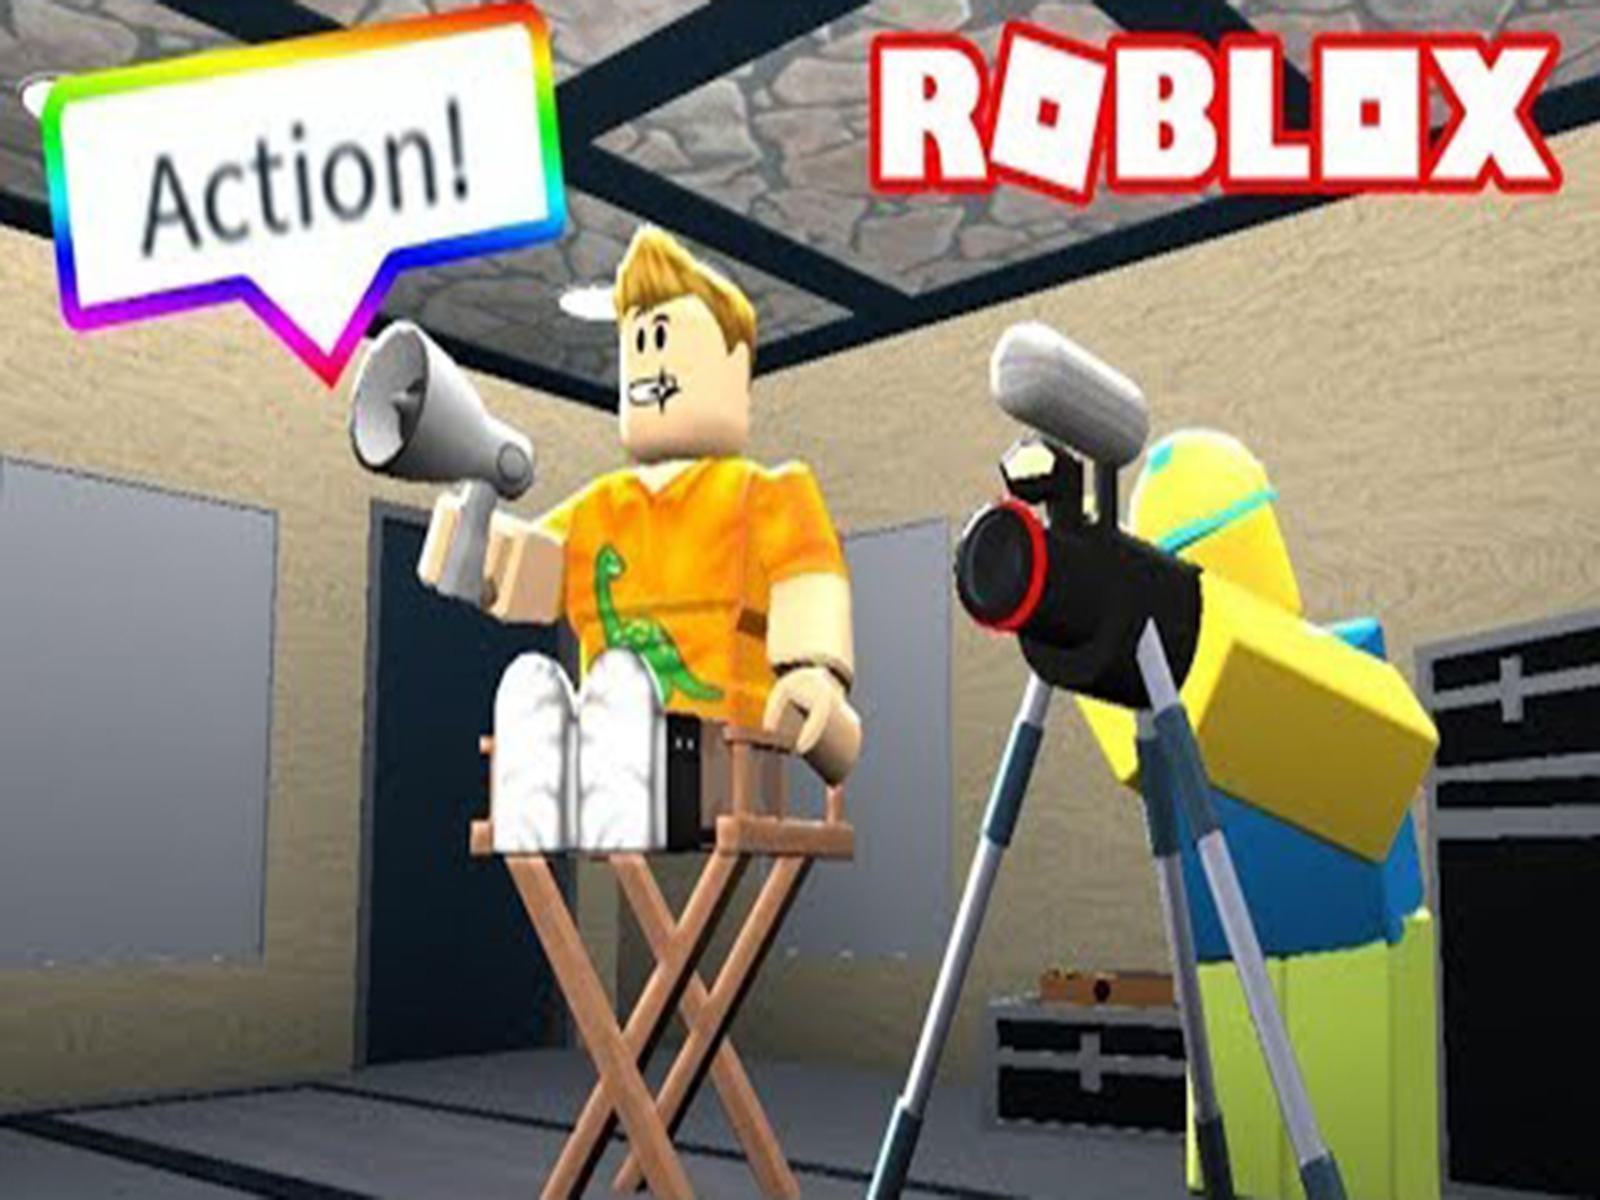 Hackers Try To Stop Our Uber Roblox Jailbreak - Prime Video Clip Sketch